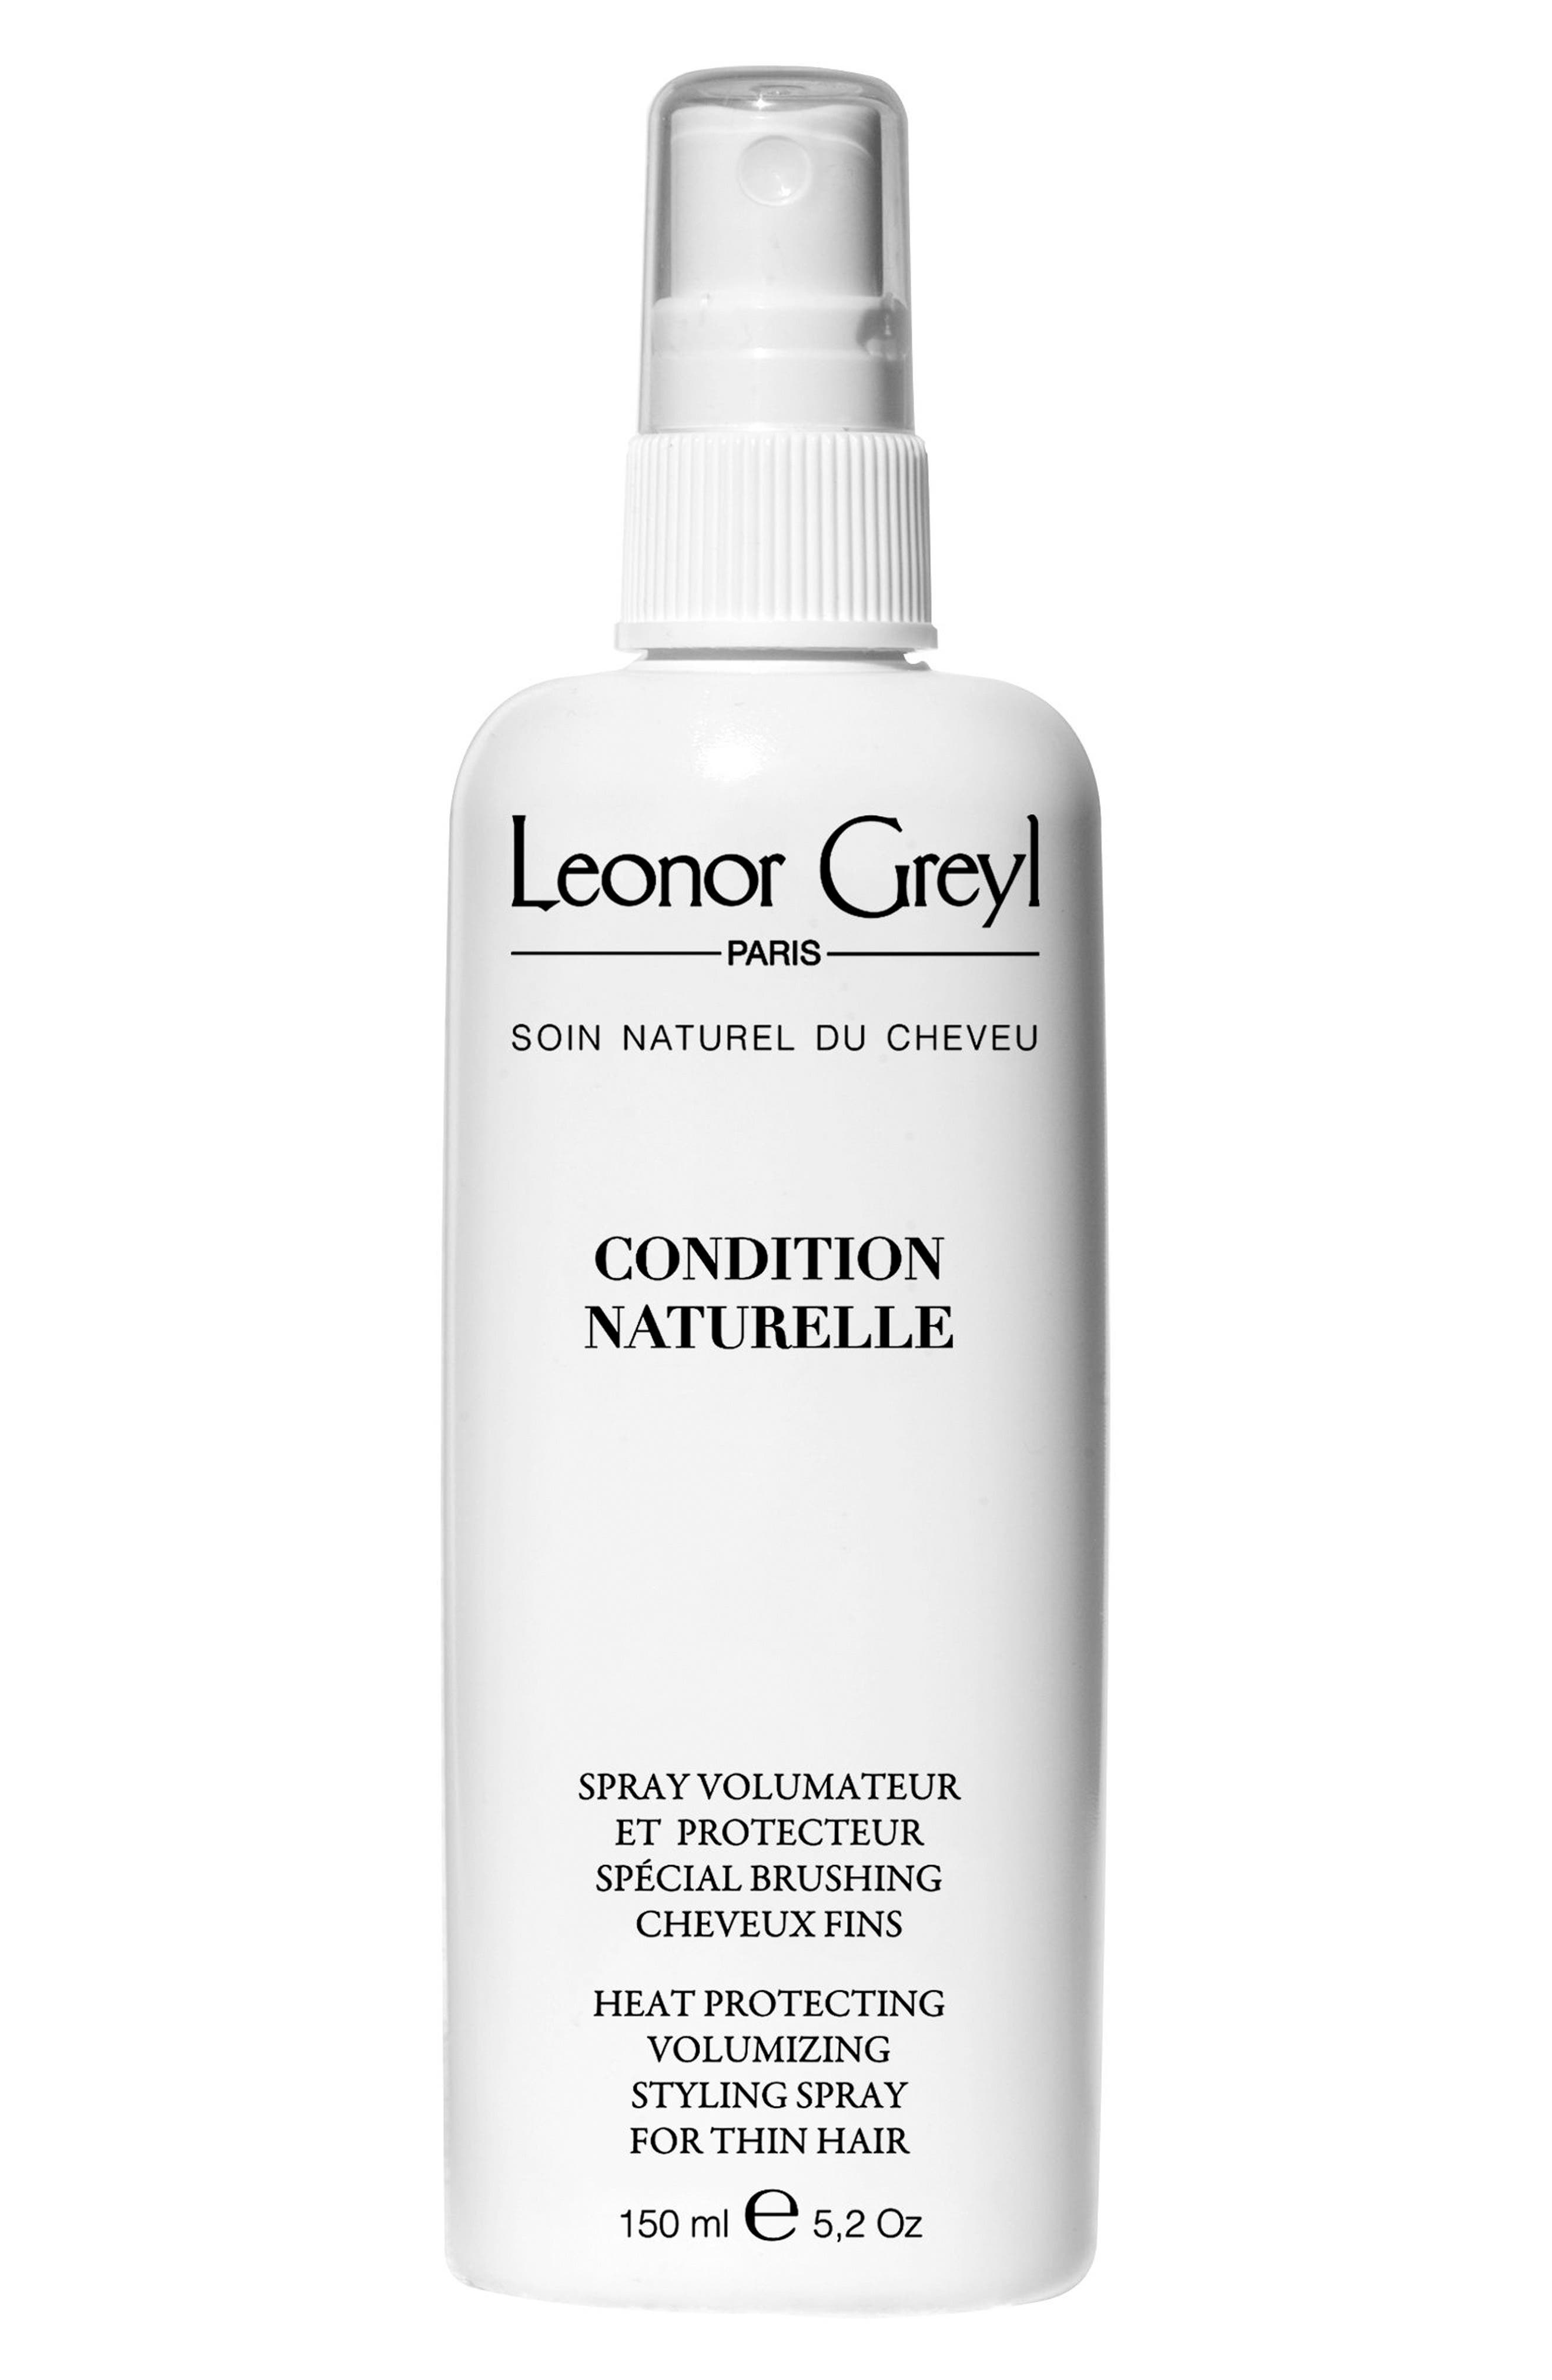 Leonor Greyl PARIS 'Condition Naturelle' Heat Protective Styling Spray for Thin Hair